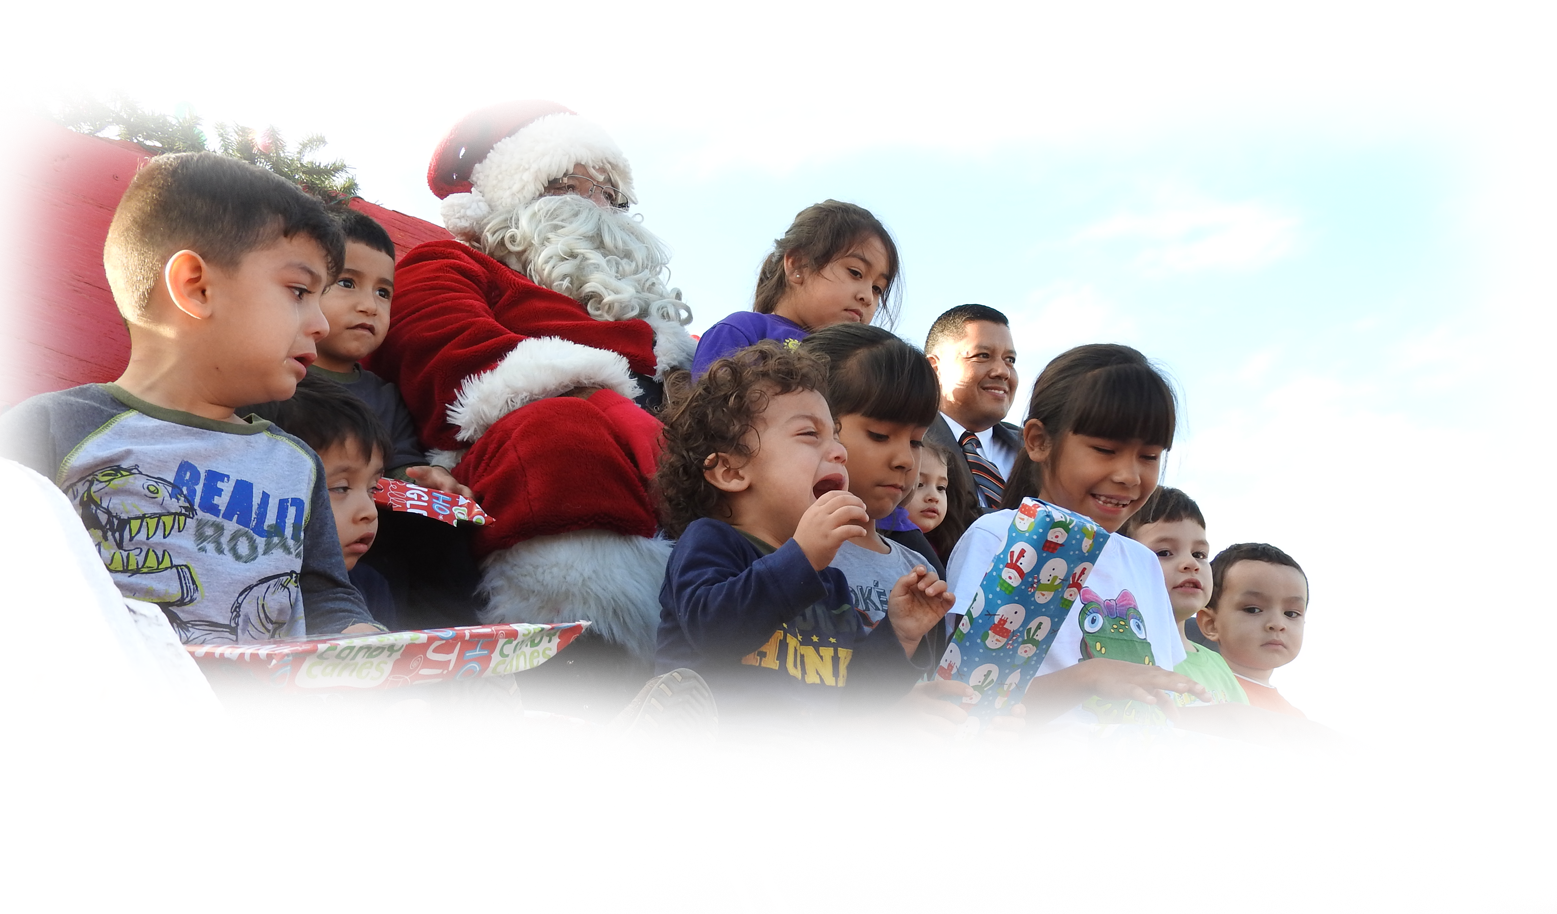 Judge Dominguez Santa Clause kids Group Picture